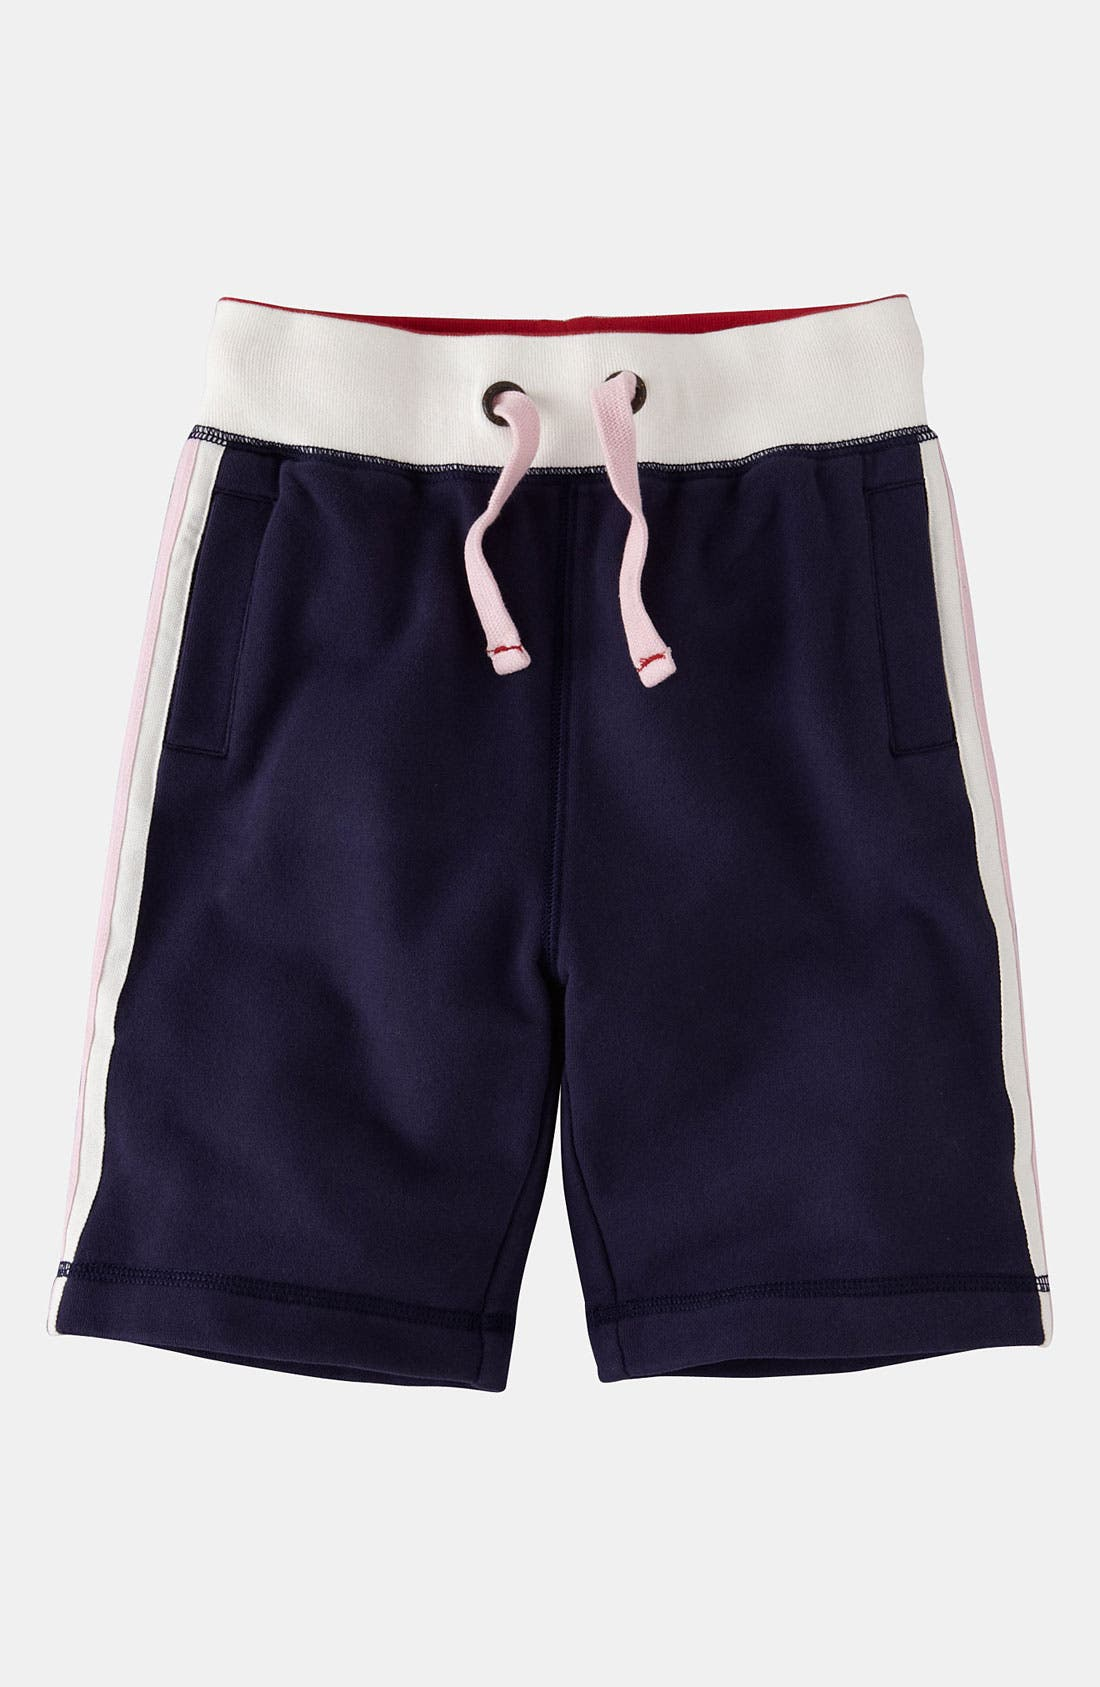 Alternate Image 1 Selected - Johnnie b Jersey Shorts (Big Boys)